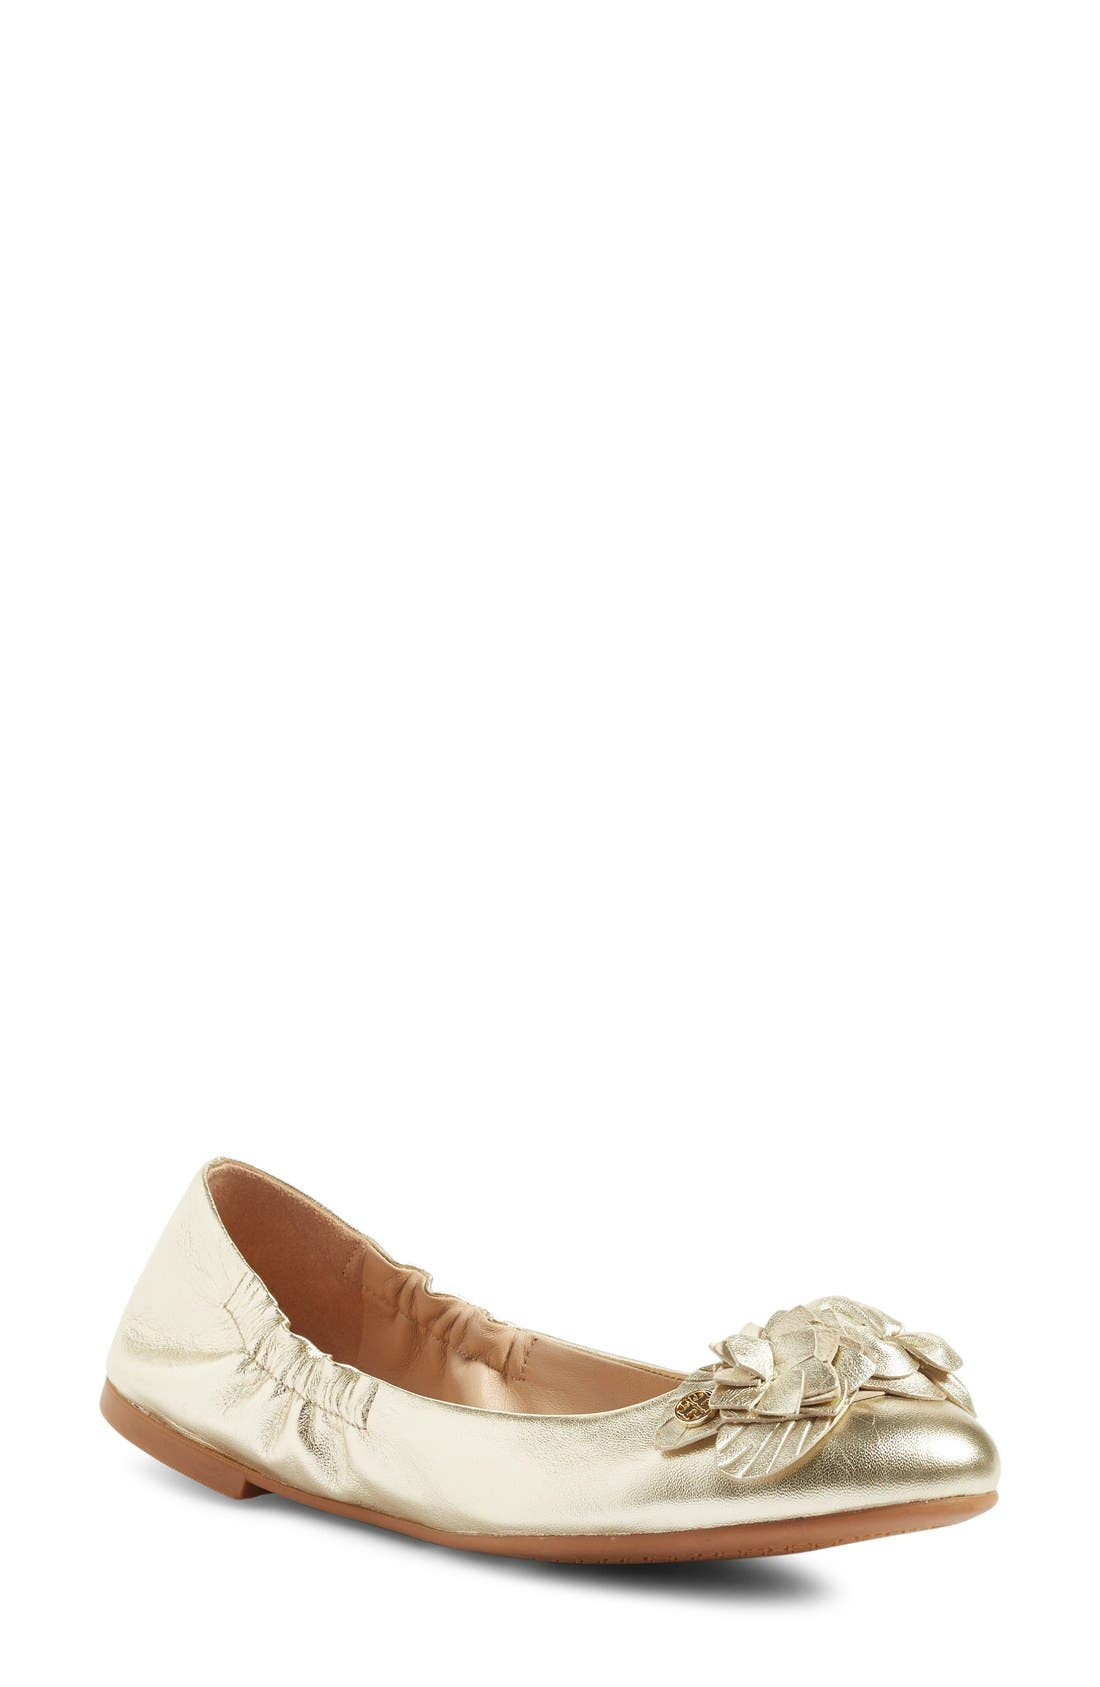 Alternate Image 1 Selected - Tory Burch 'Blossom' Ballet Flat (Women)